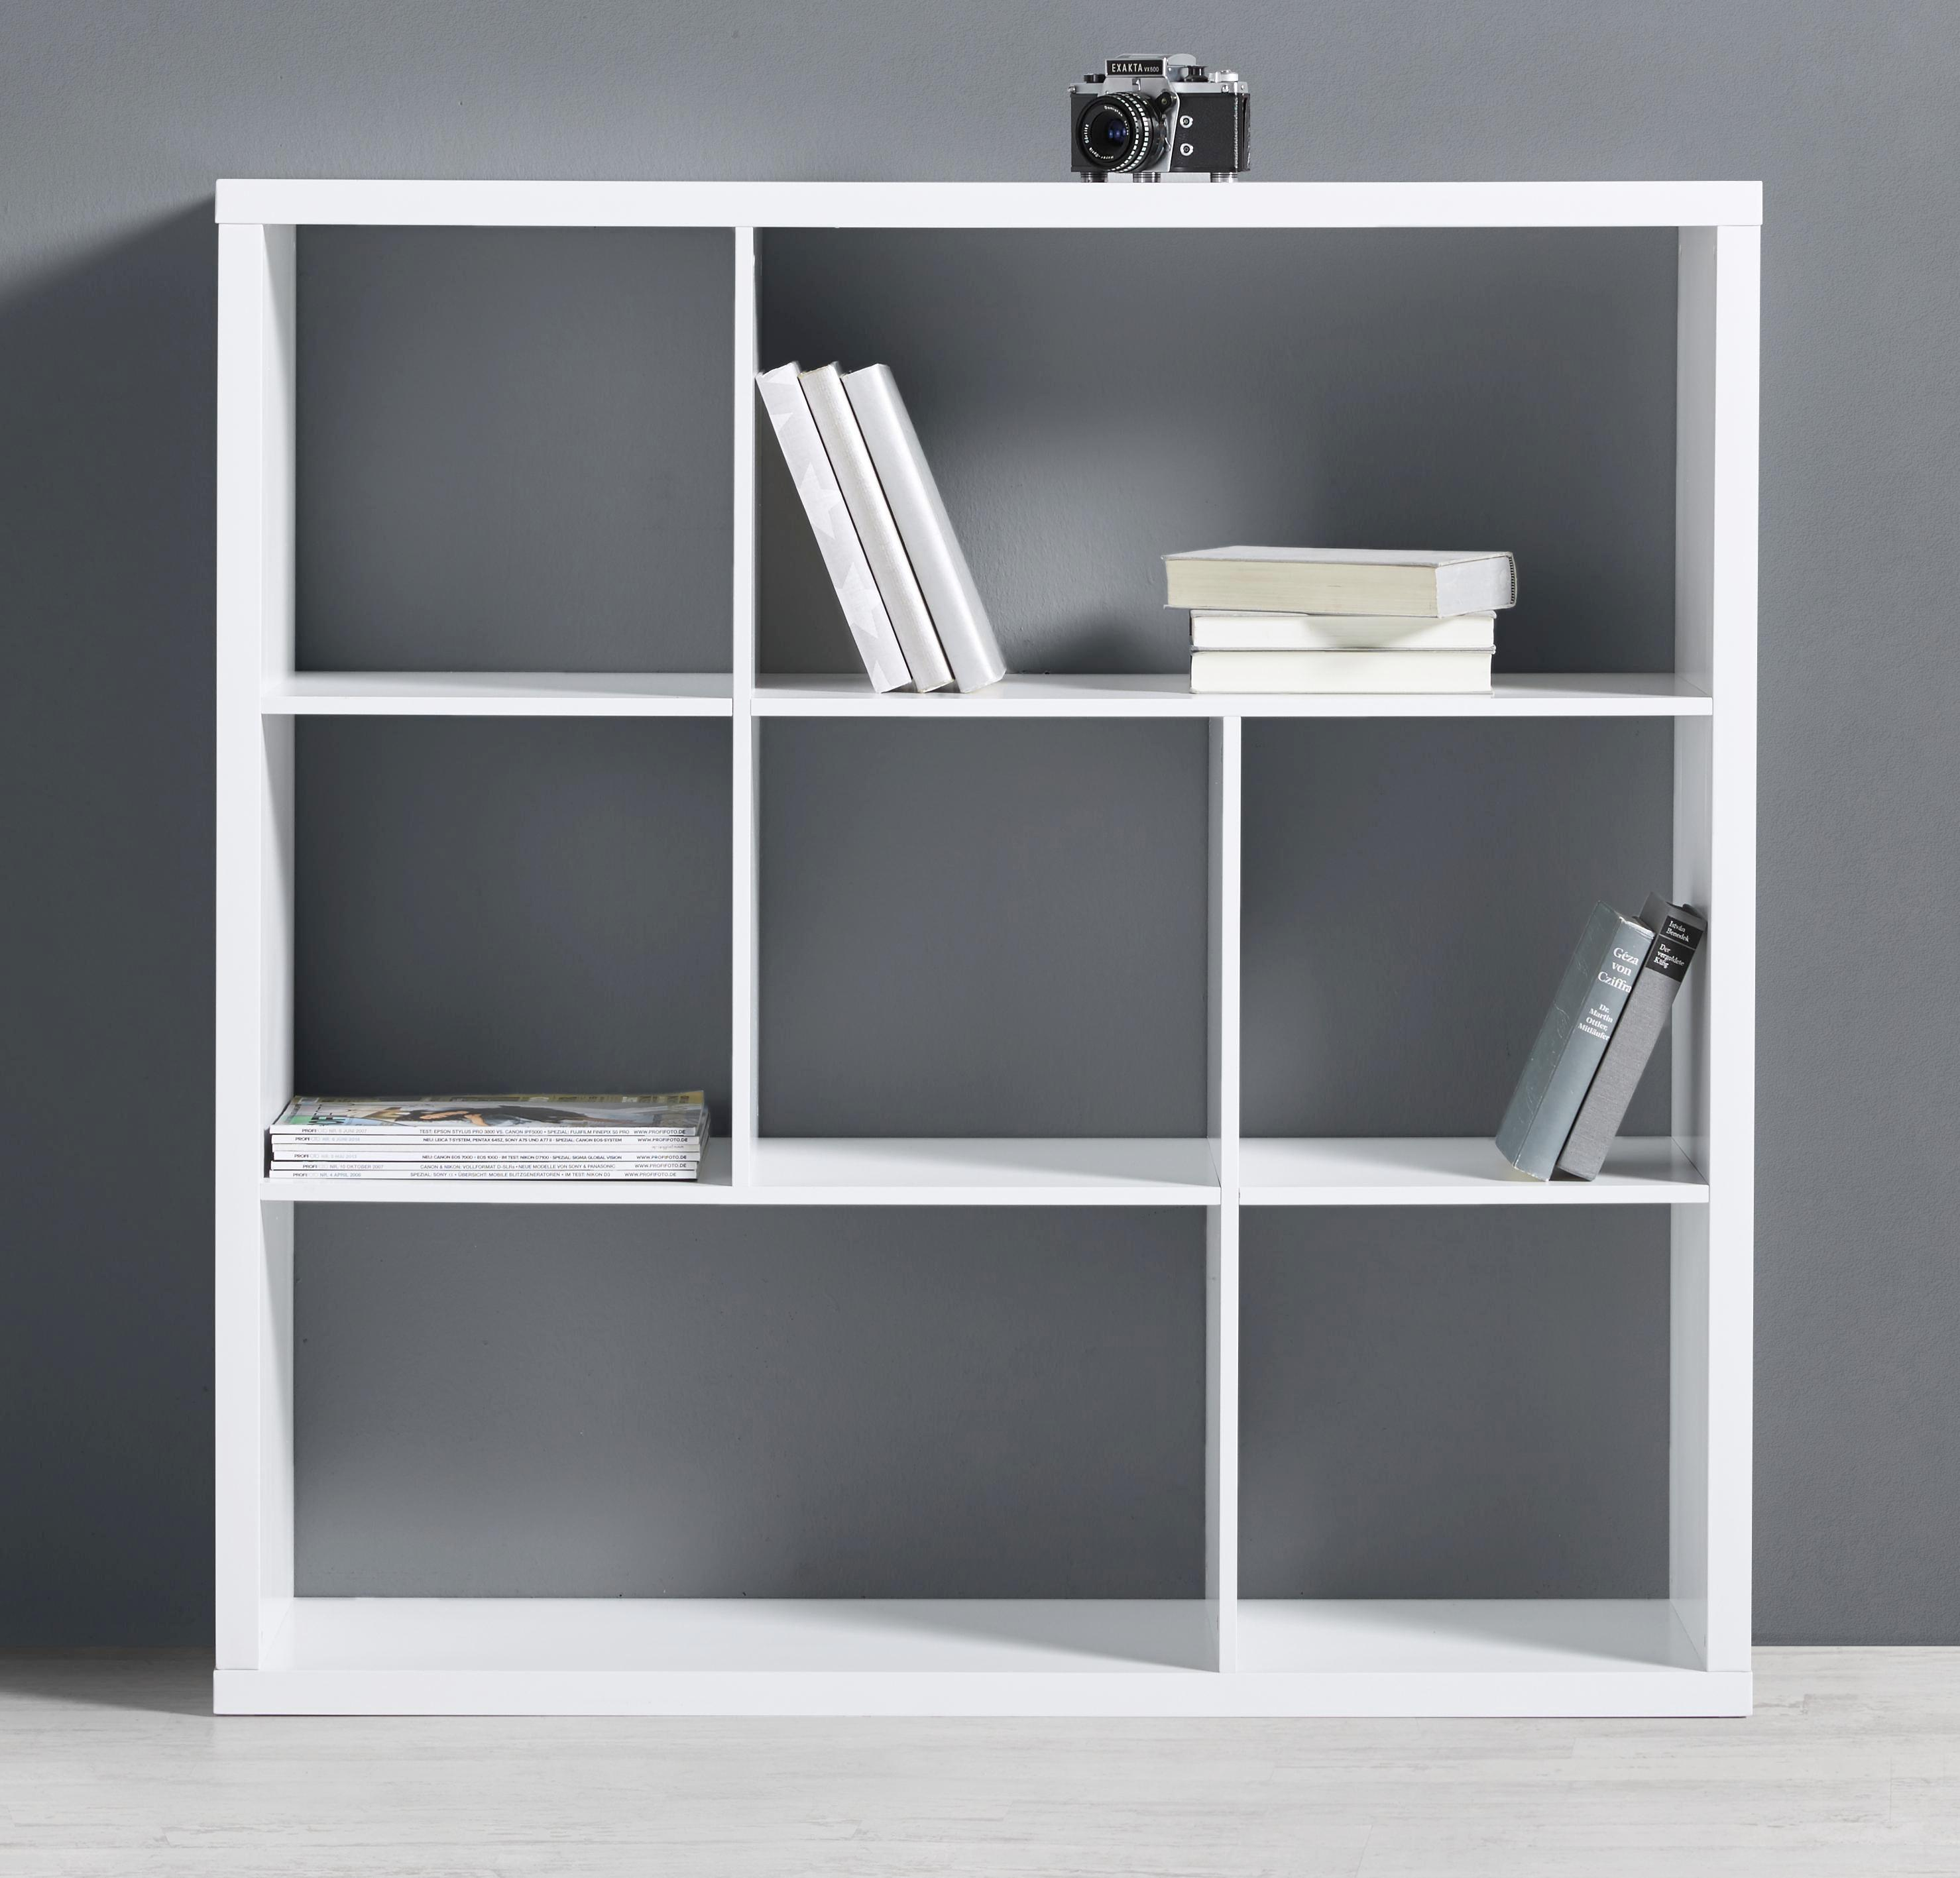 Regal Basic - Weiß, MODERN (110/110/29,5cm) - MODERN LIVING